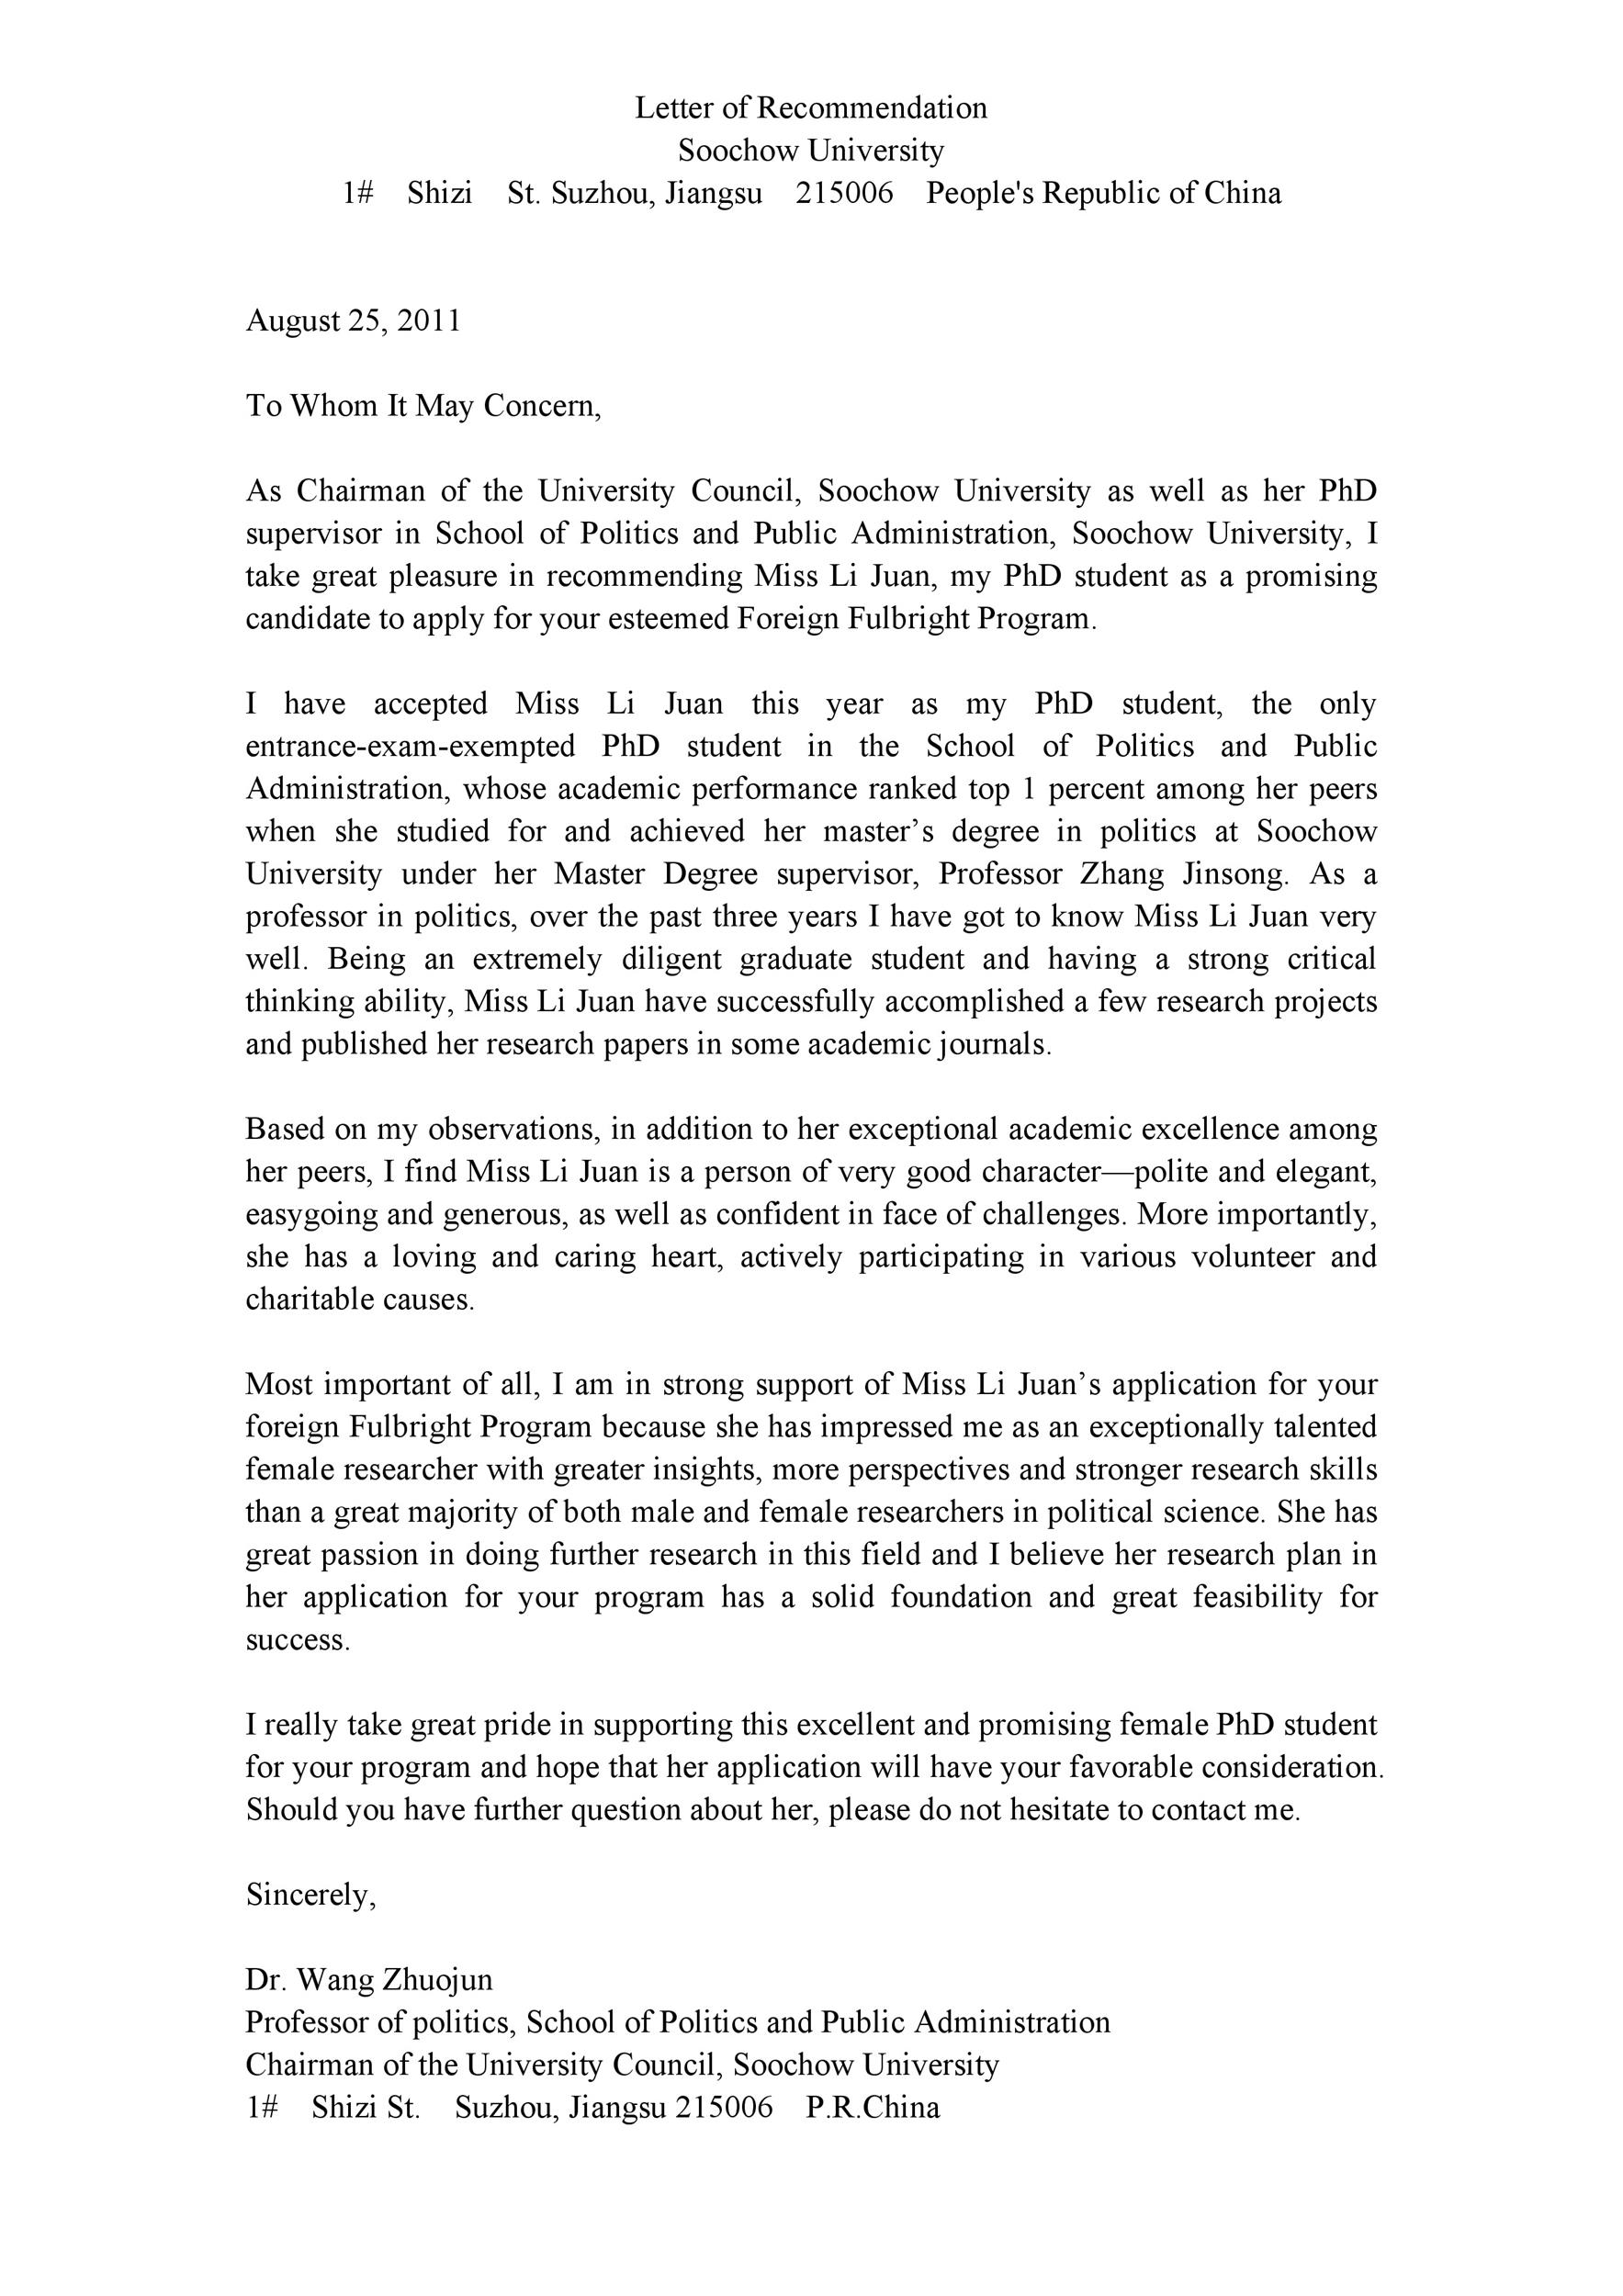 50 Amazing Recommendation Letters For Student From Teacher